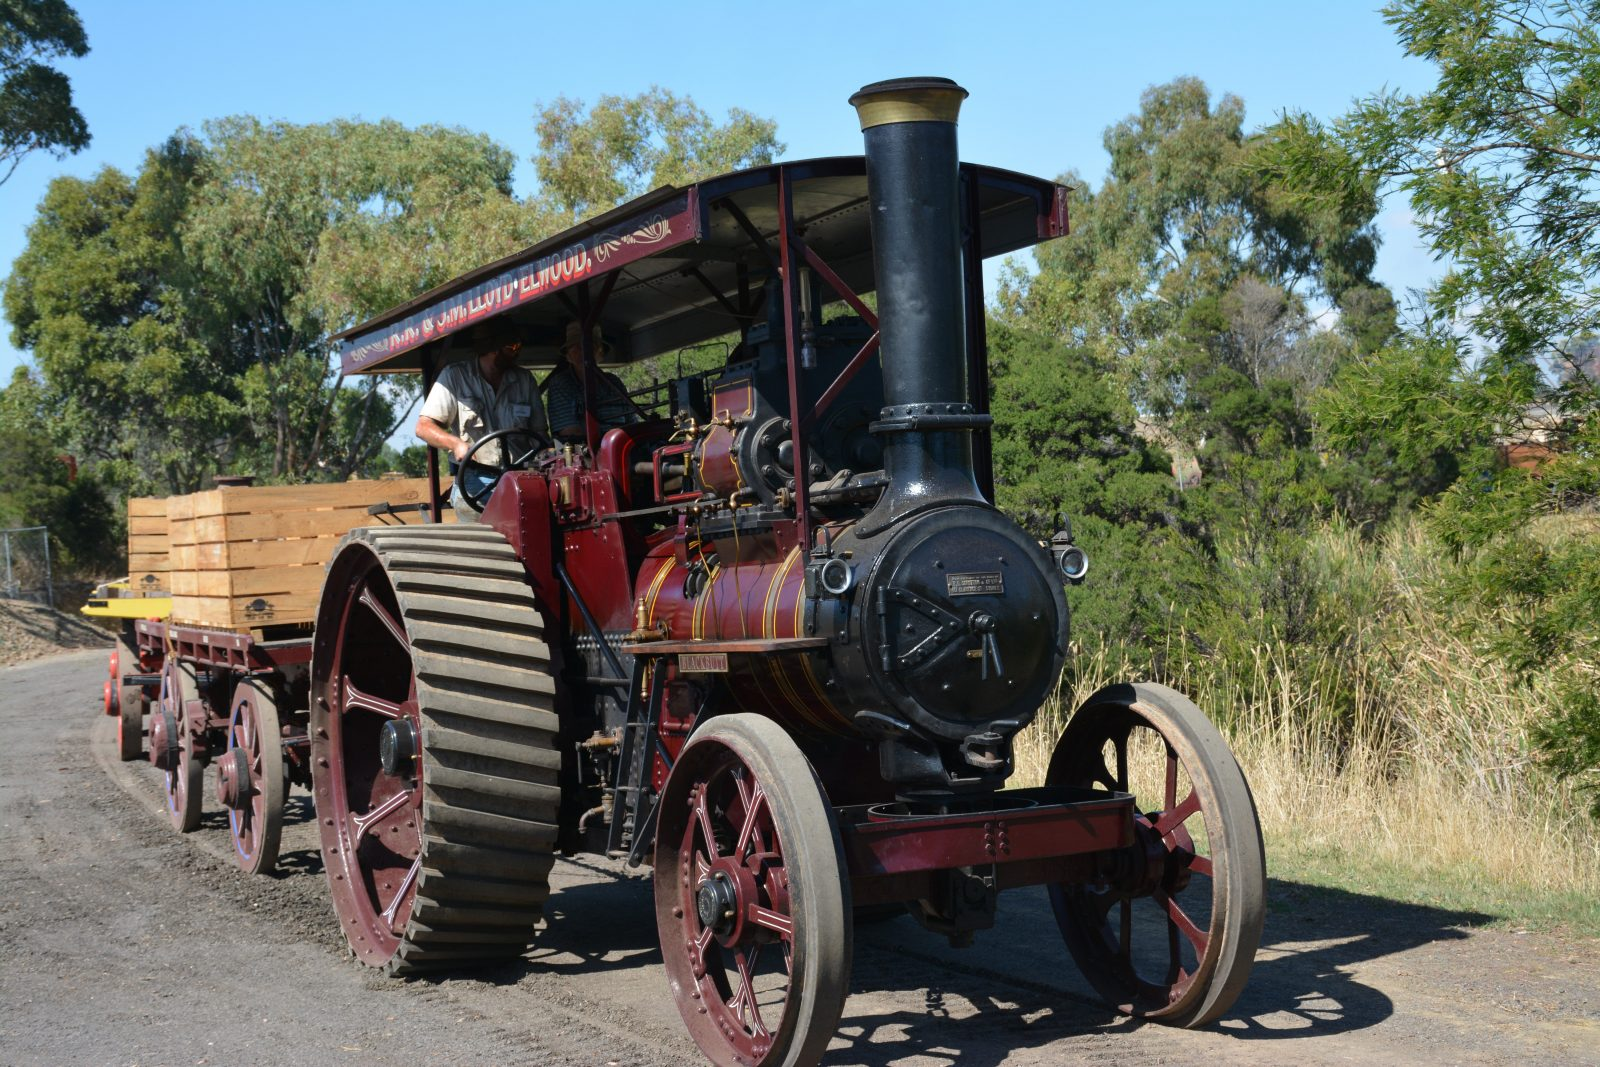 A steam traction engine towing an old wagon